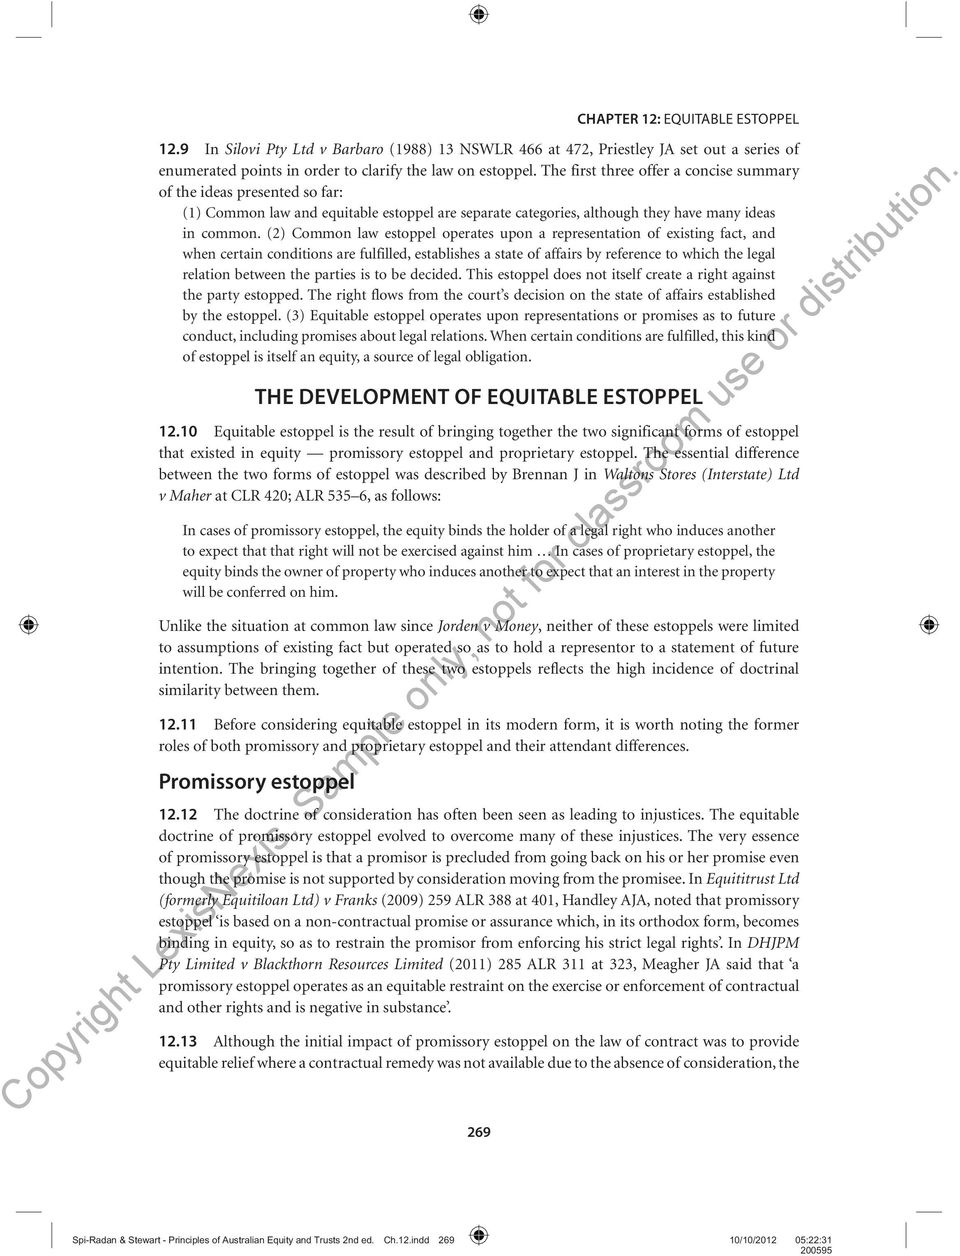 Essay equitable estoppel contracts